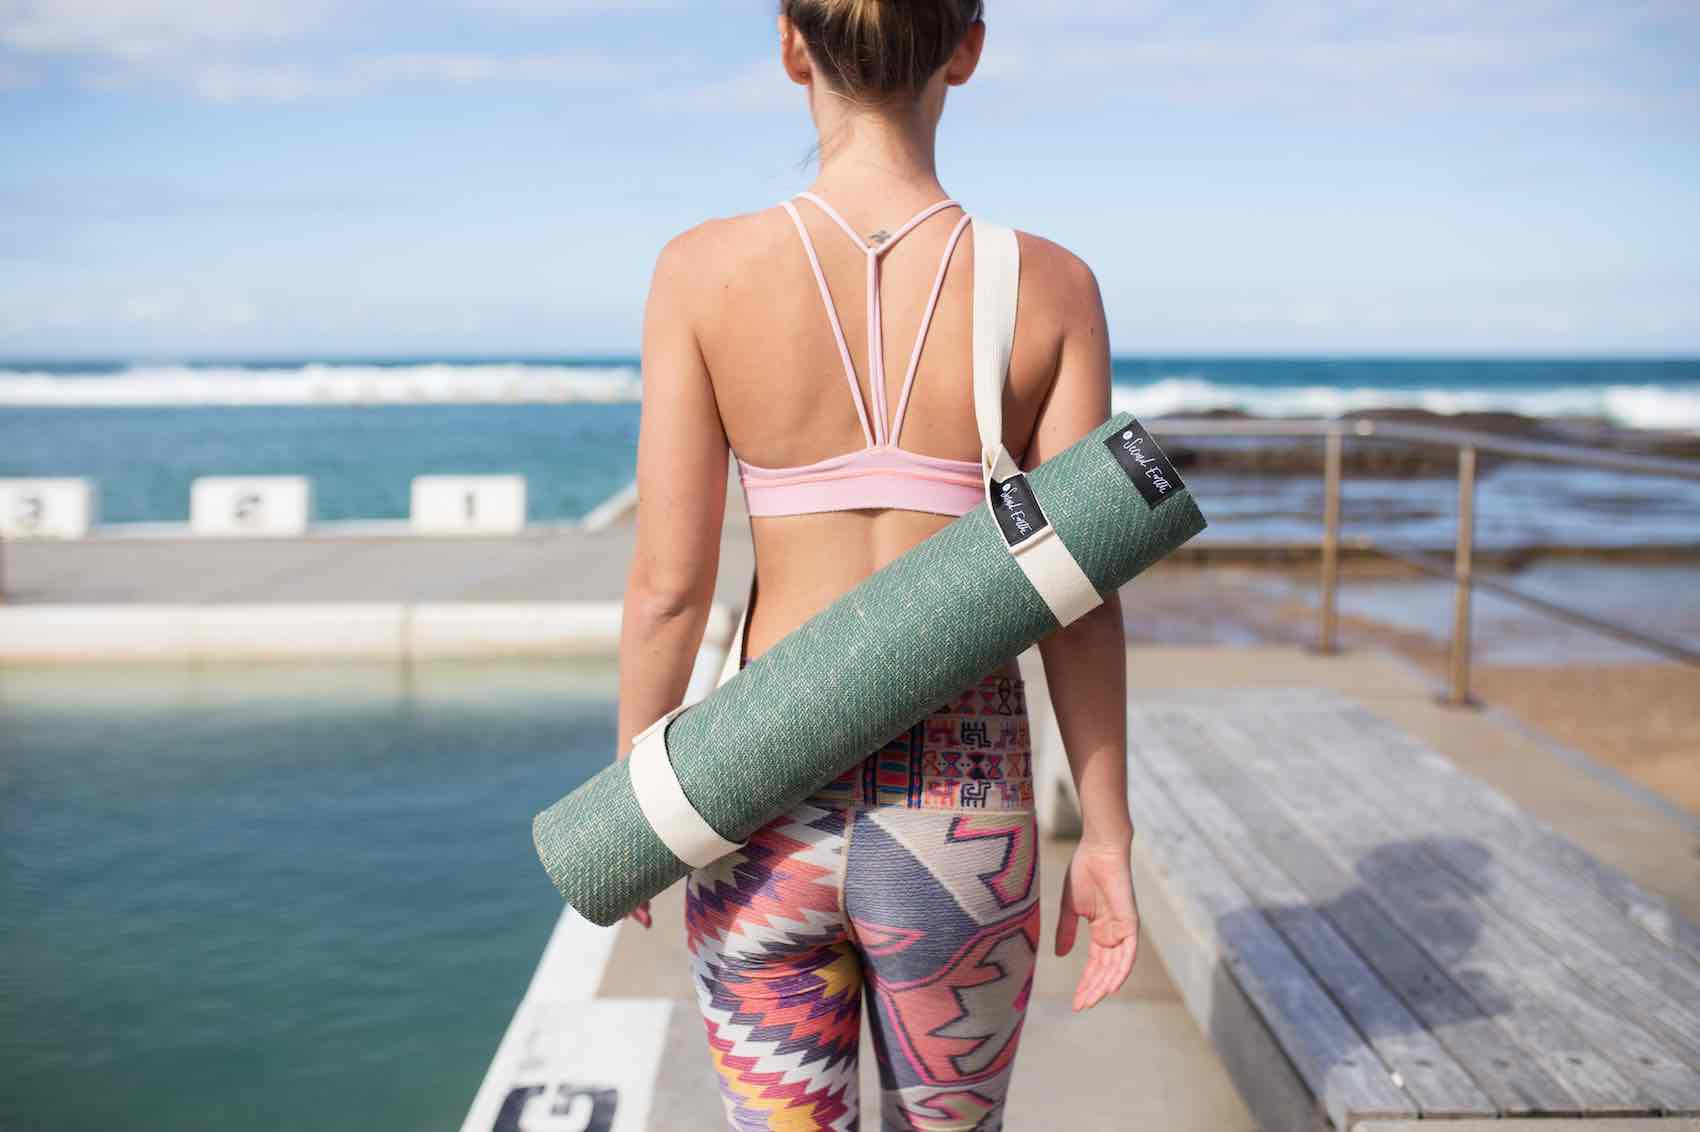 80+ Eco-friendly sports gifts for yogis [Ultimate guide]